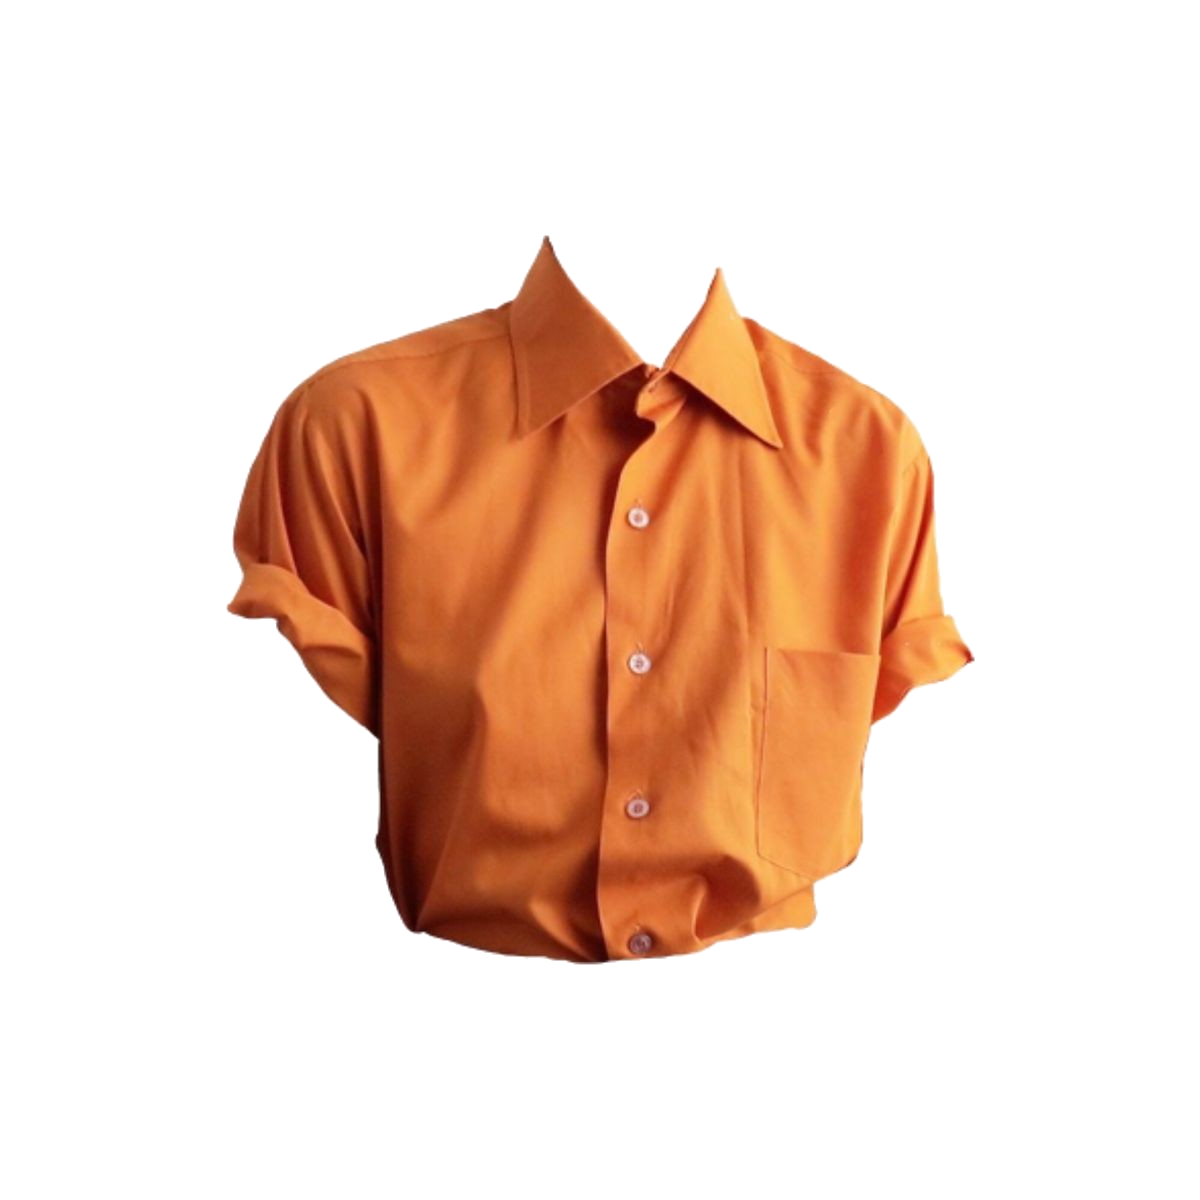 117201817241 Orange Outfit Cool Outfits Cute Outfits